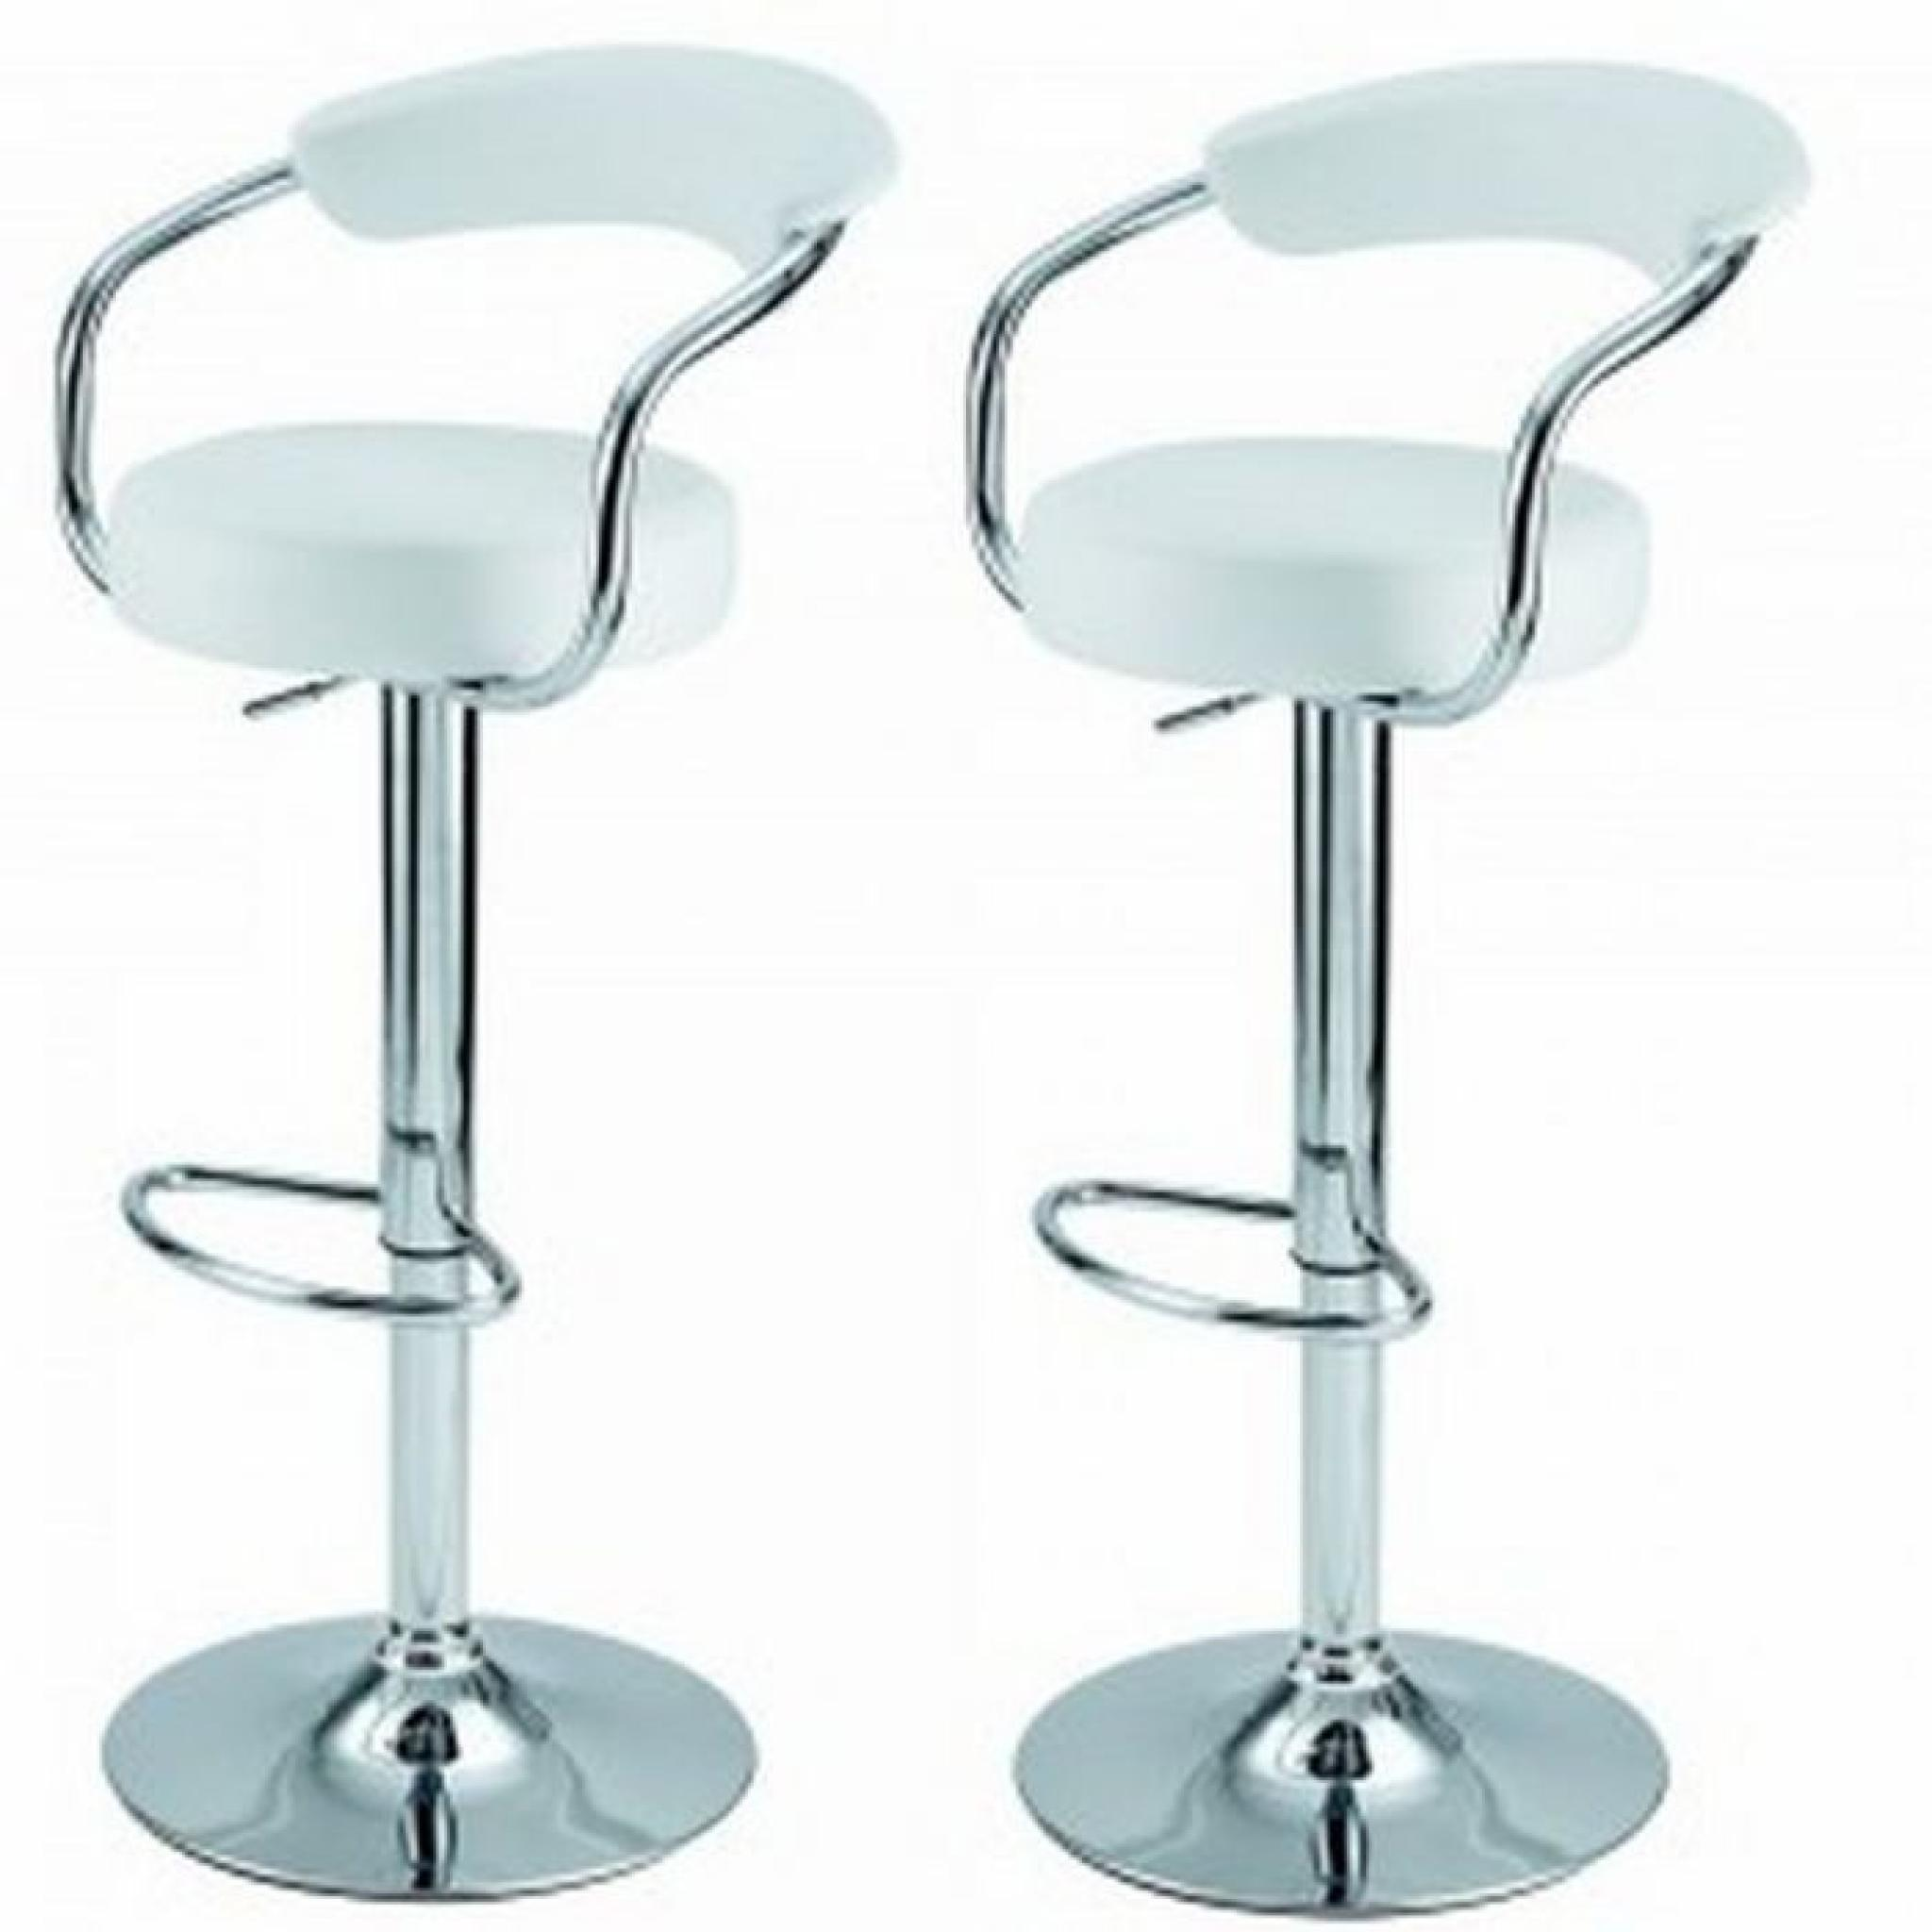 lot de 2 tabourets de bar jazz blanc achat vente tabouret de bar pas cher couleur et. Black Bedroom Furniture Sets. Home Design Ideas